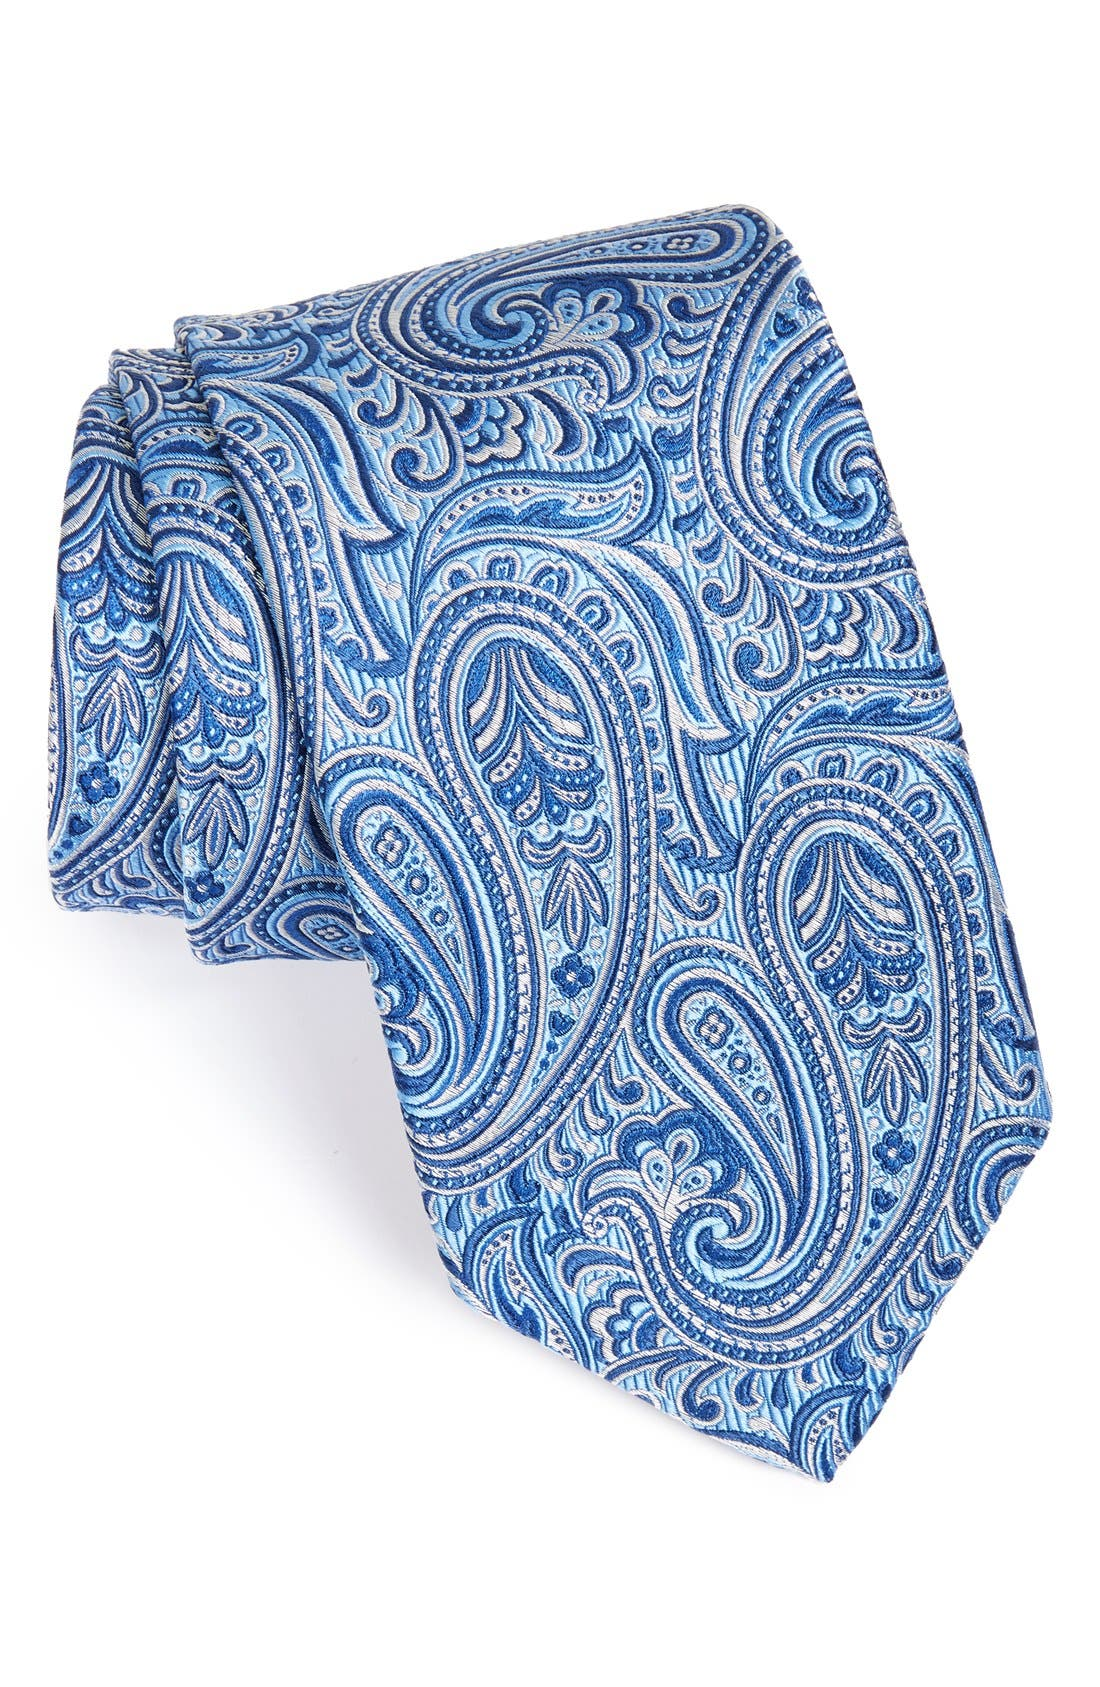 'Best of Class' Woven Silk Tie,                             Main thumbnail 1, color,                             474